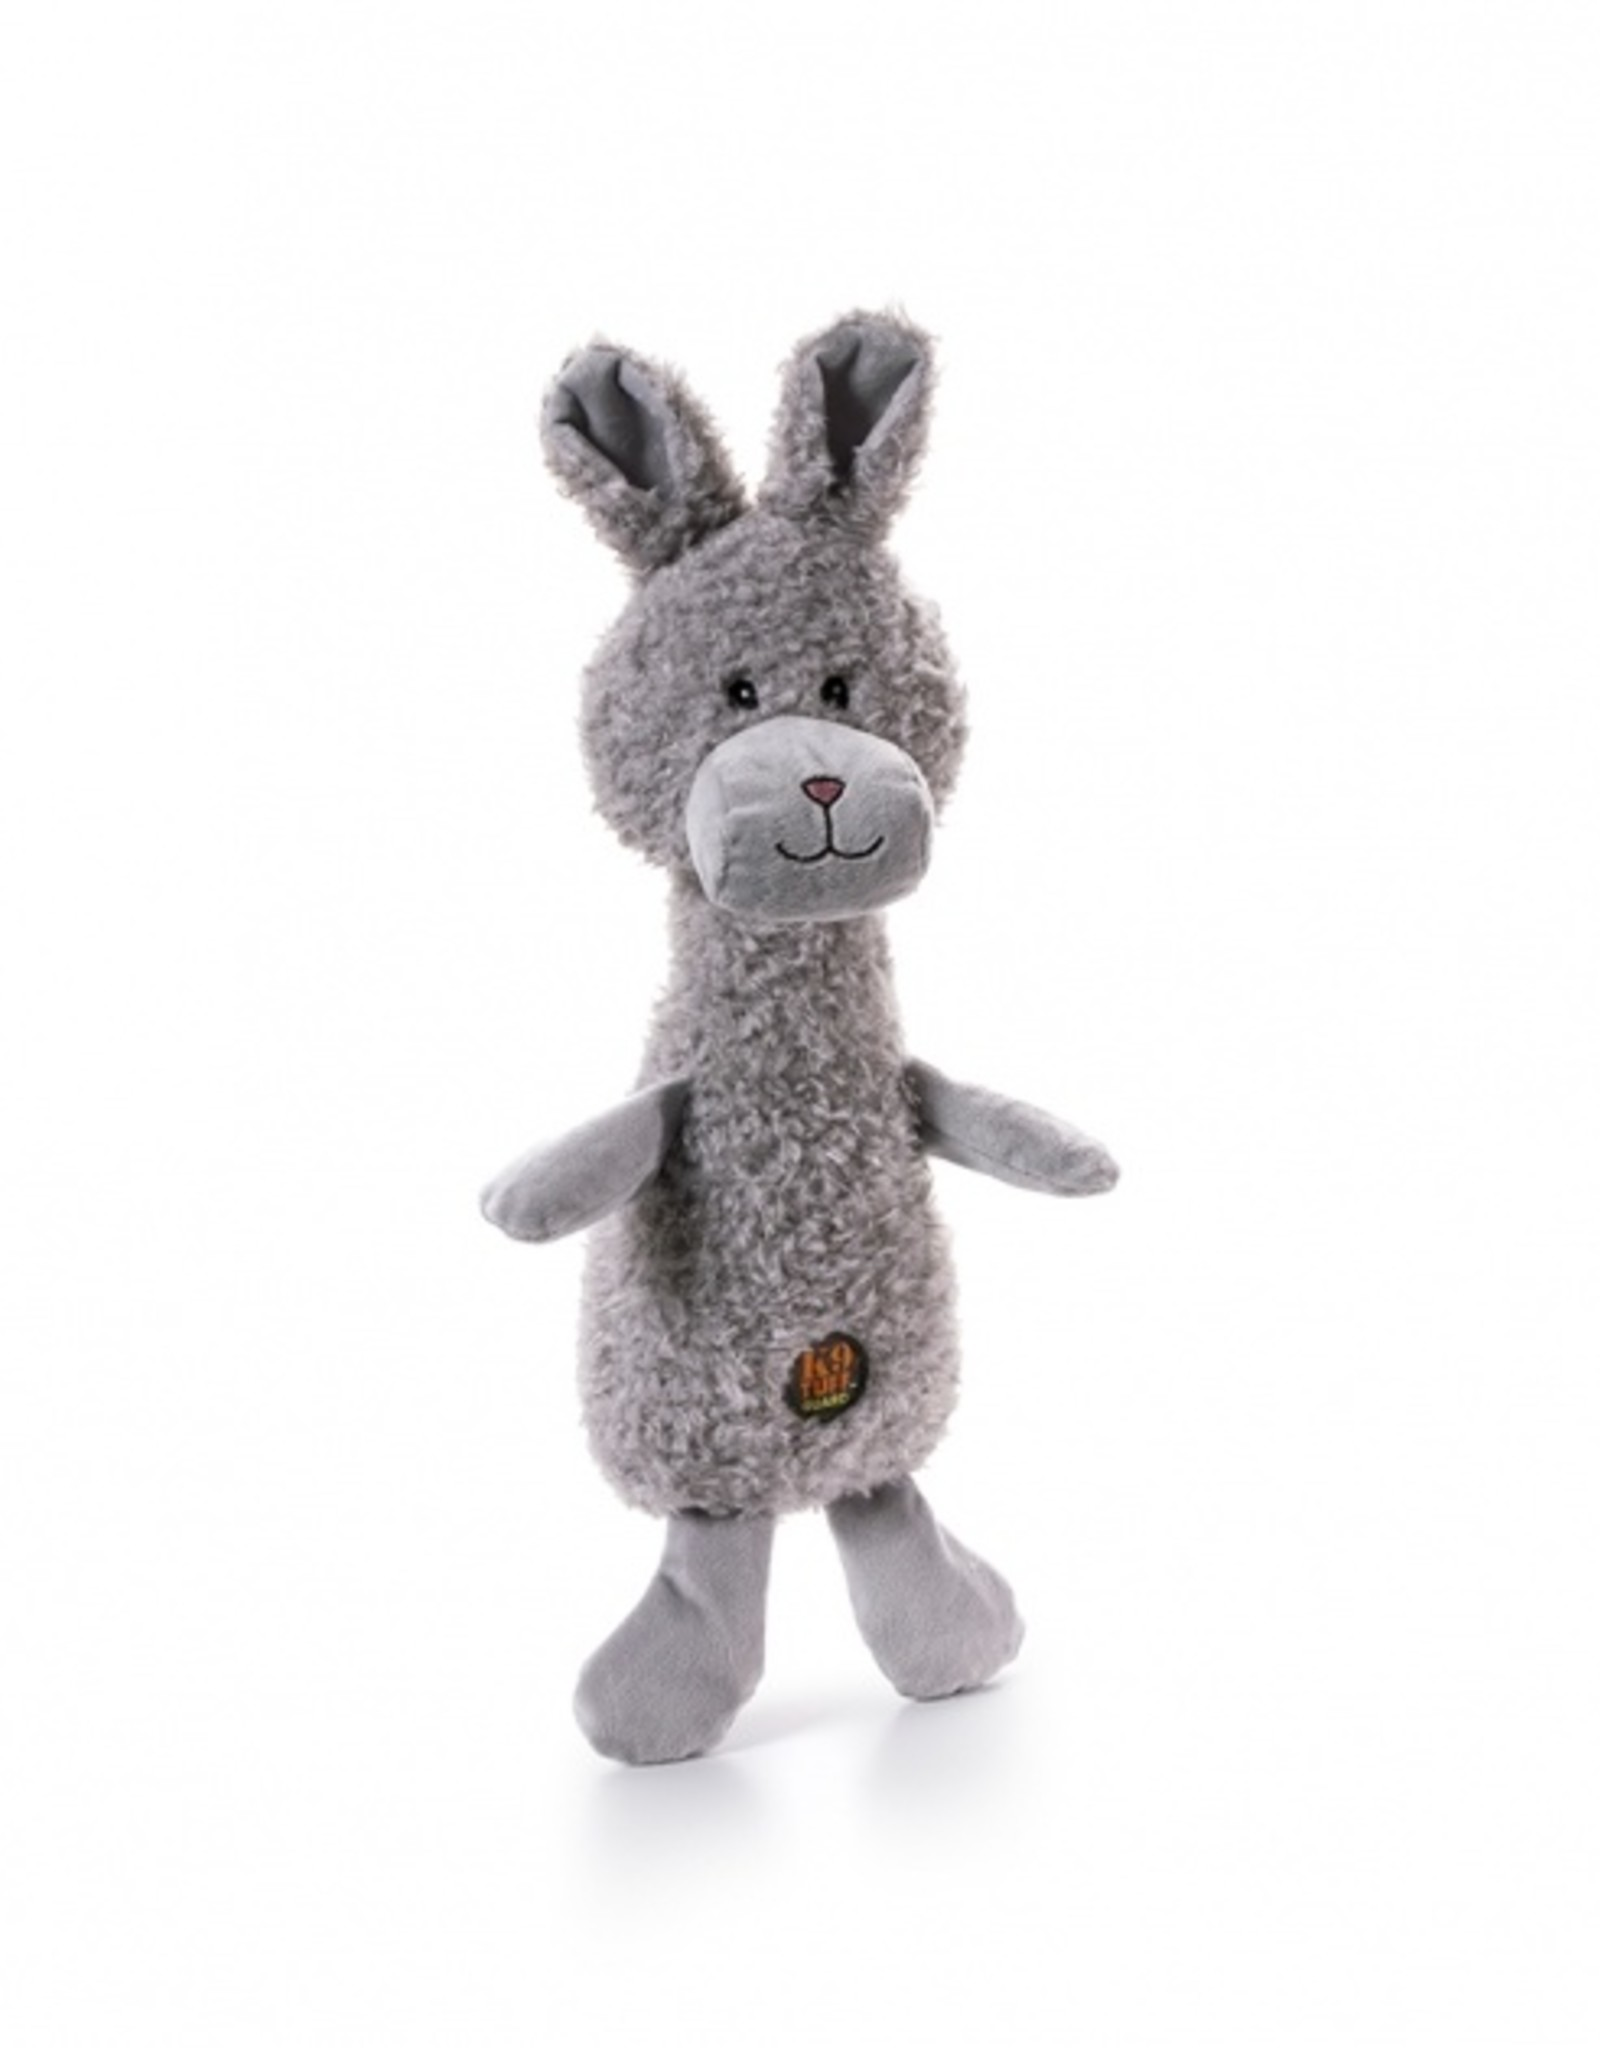 CHARMING PET PRODUCTS CHARMING PET SCRUFFLES BUNNY SMALL